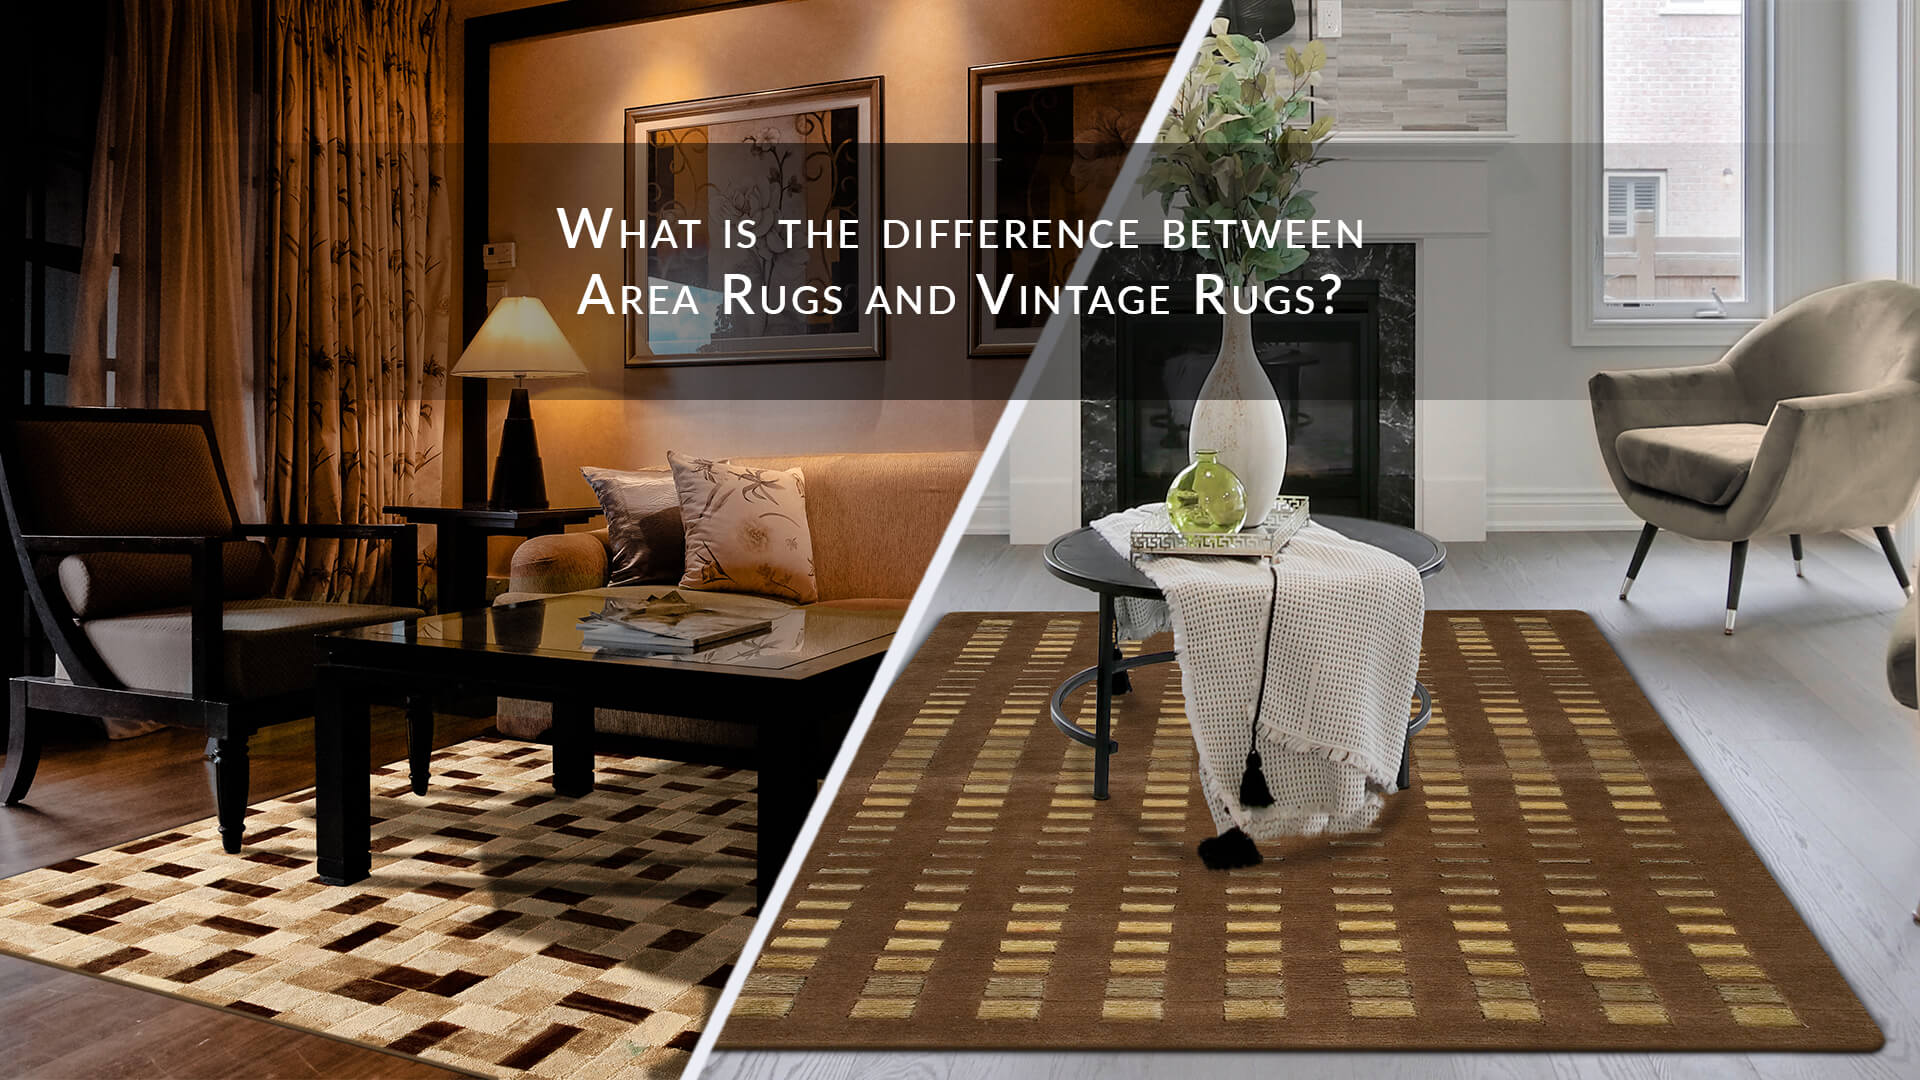 What-is-the-difference-between-area-rugs-and-vintage-rugs